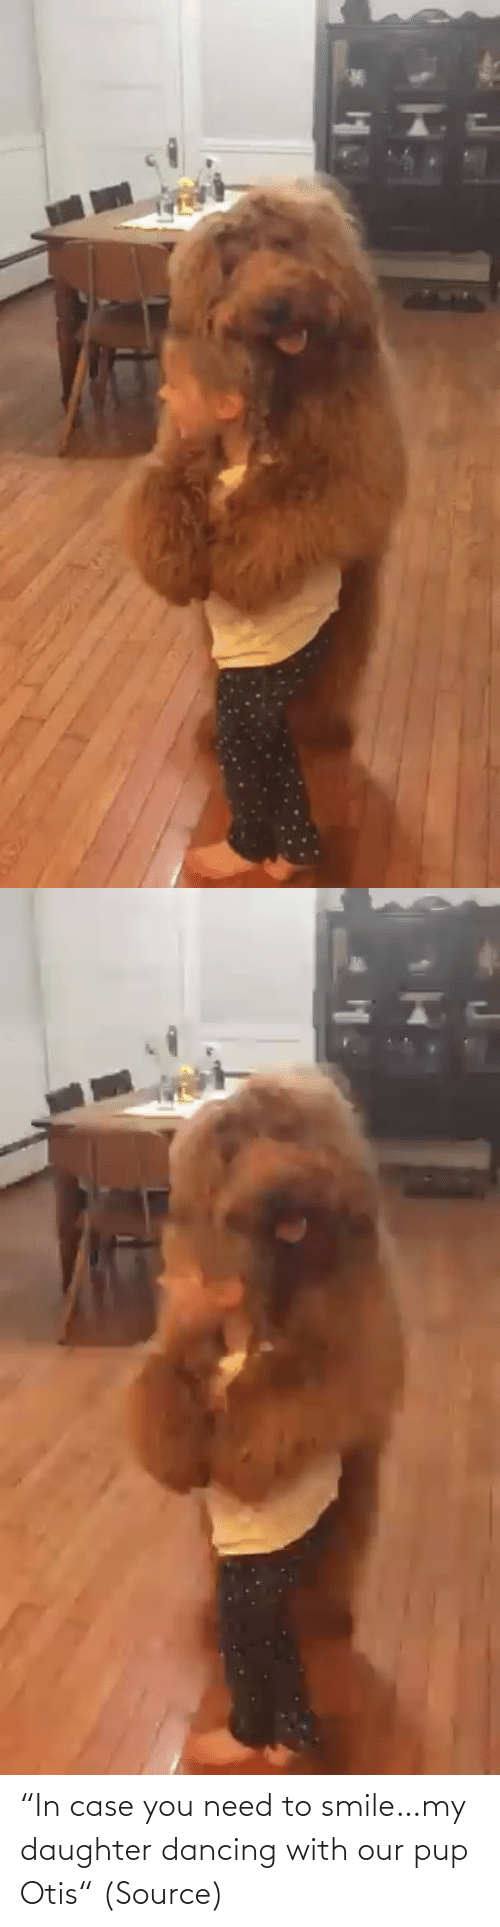 "Our: ""In case you need to smile…my daughter dancing with our pup Otis"" (Source)"